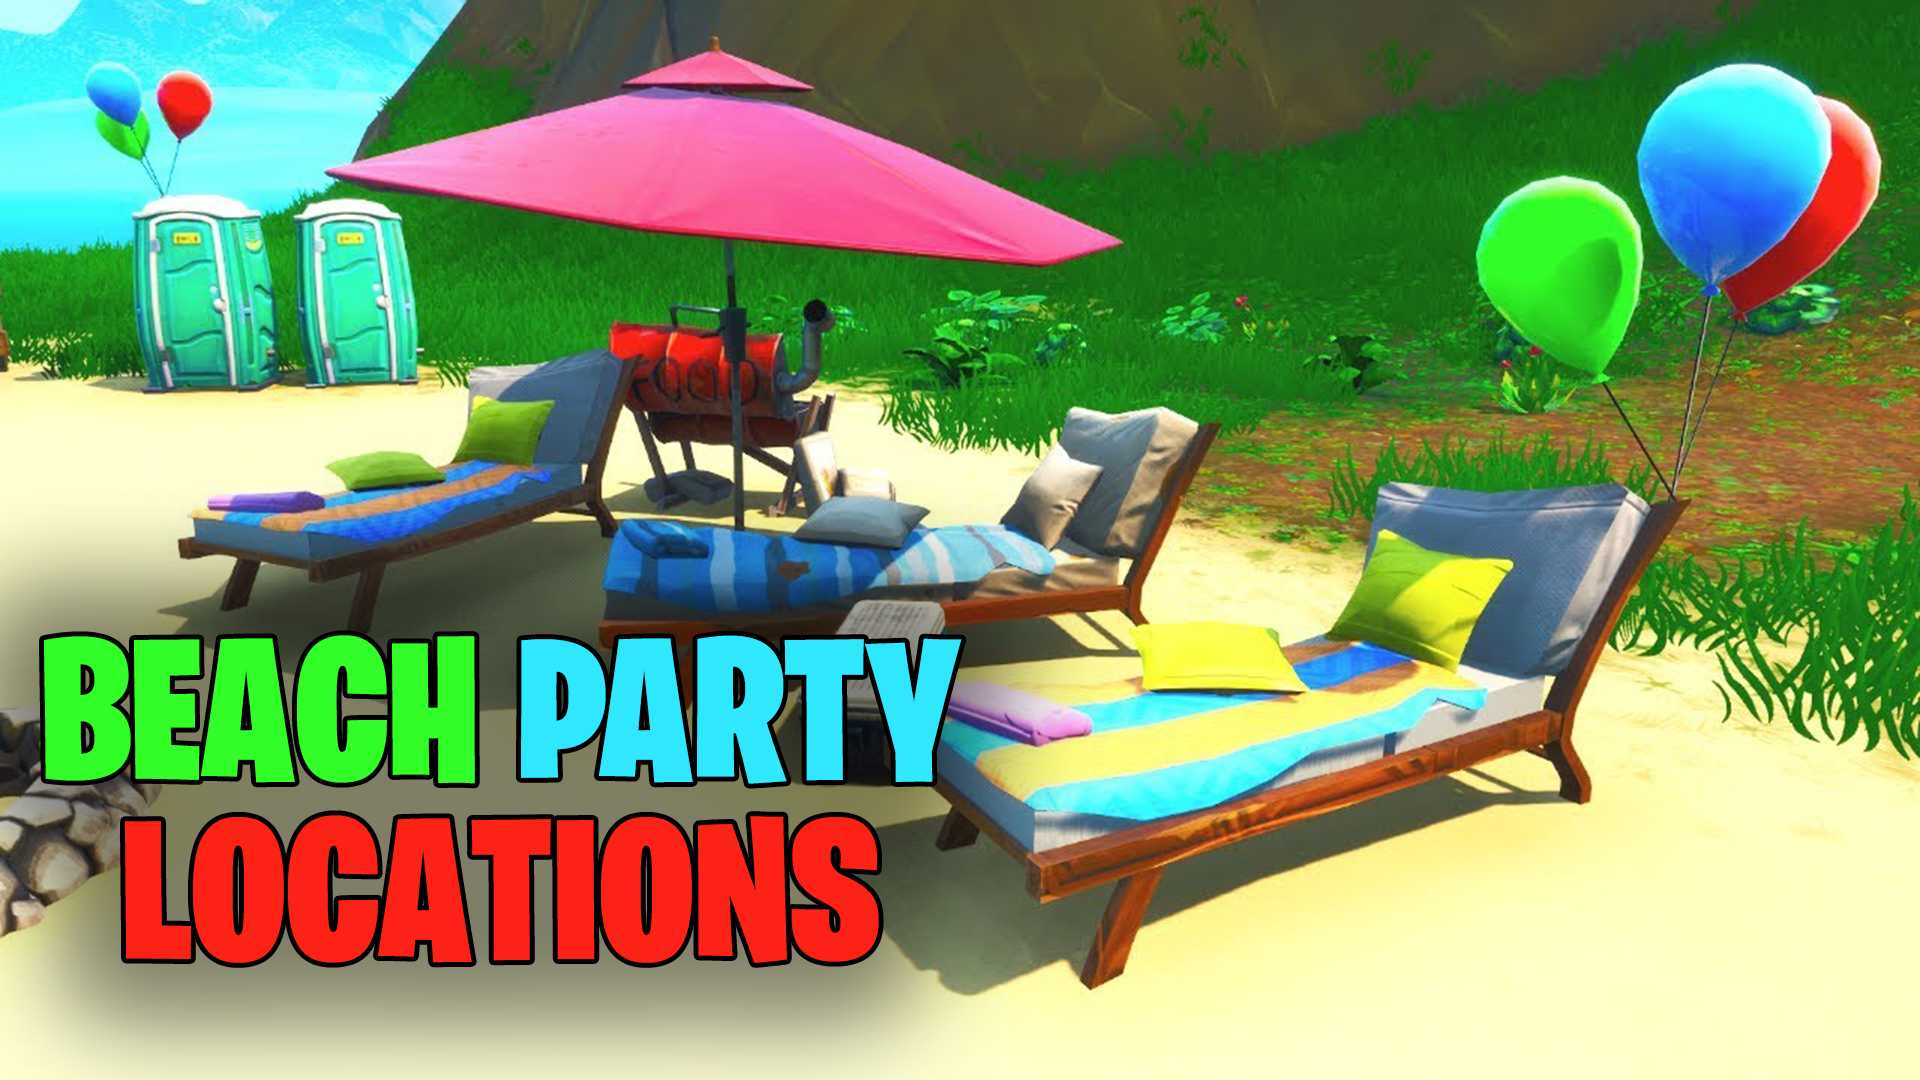 All Beach Party locations needed for Fortnite's 14 Days of Summer challenge